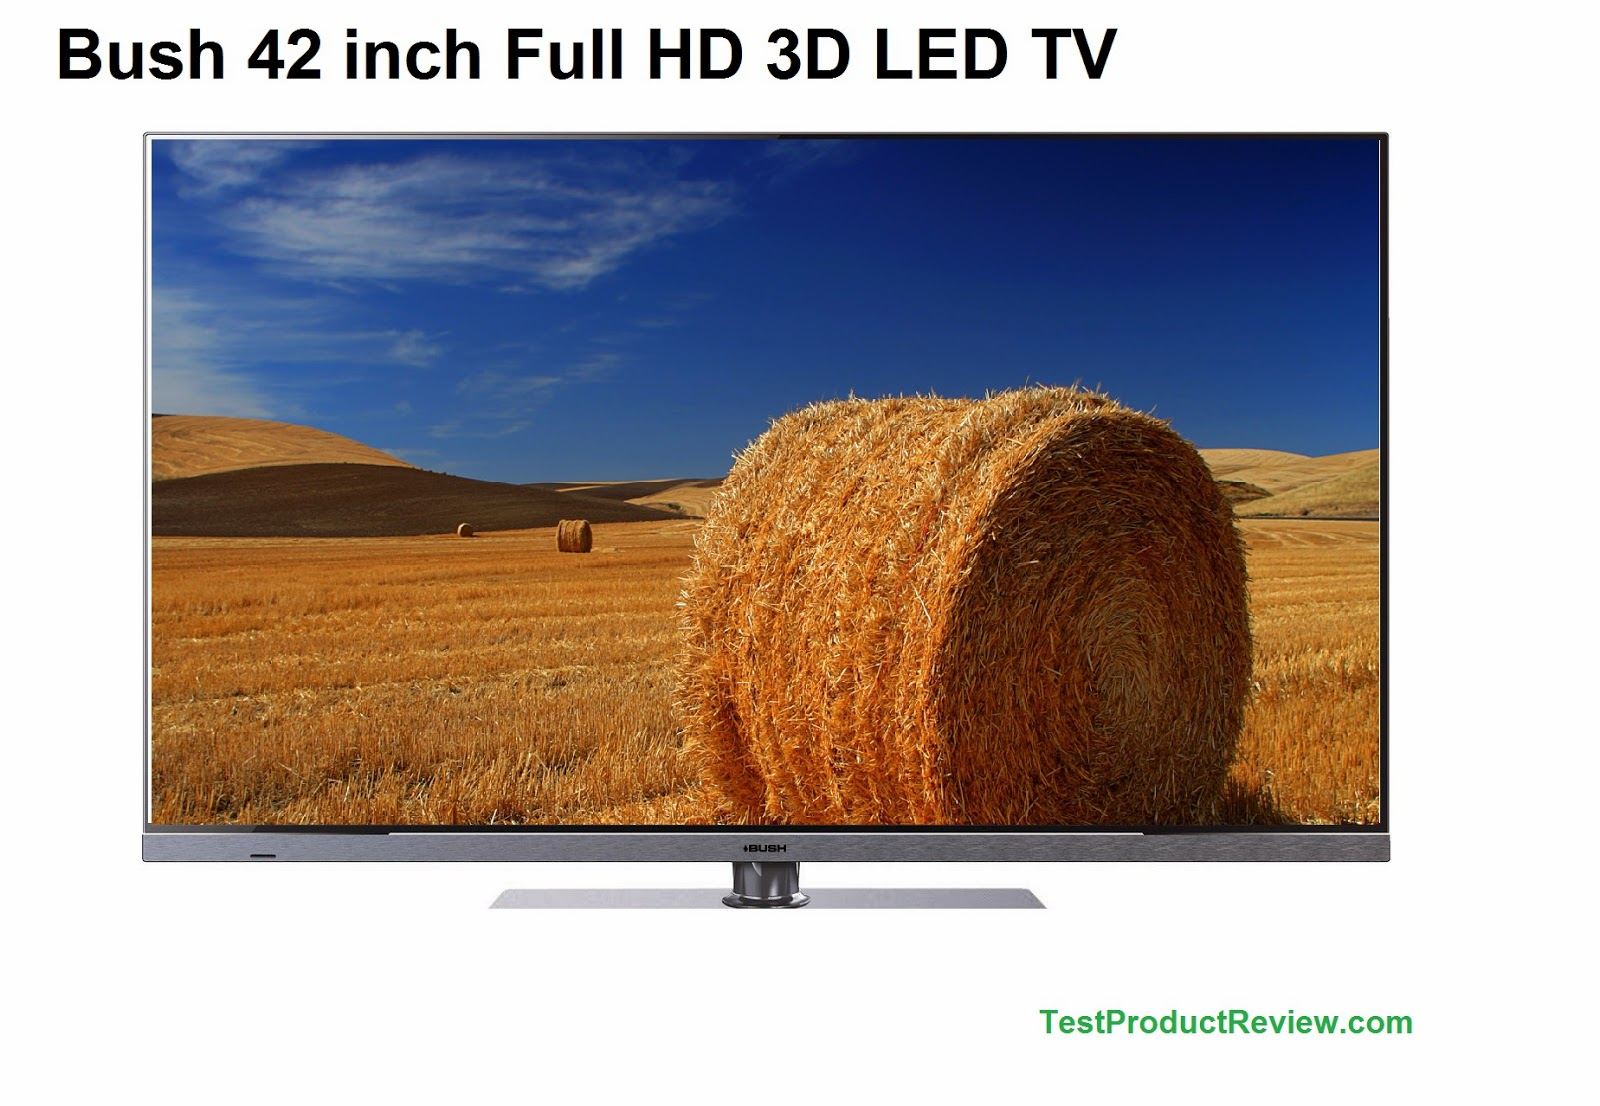 42 inch Full HD 3D LED Bush TV